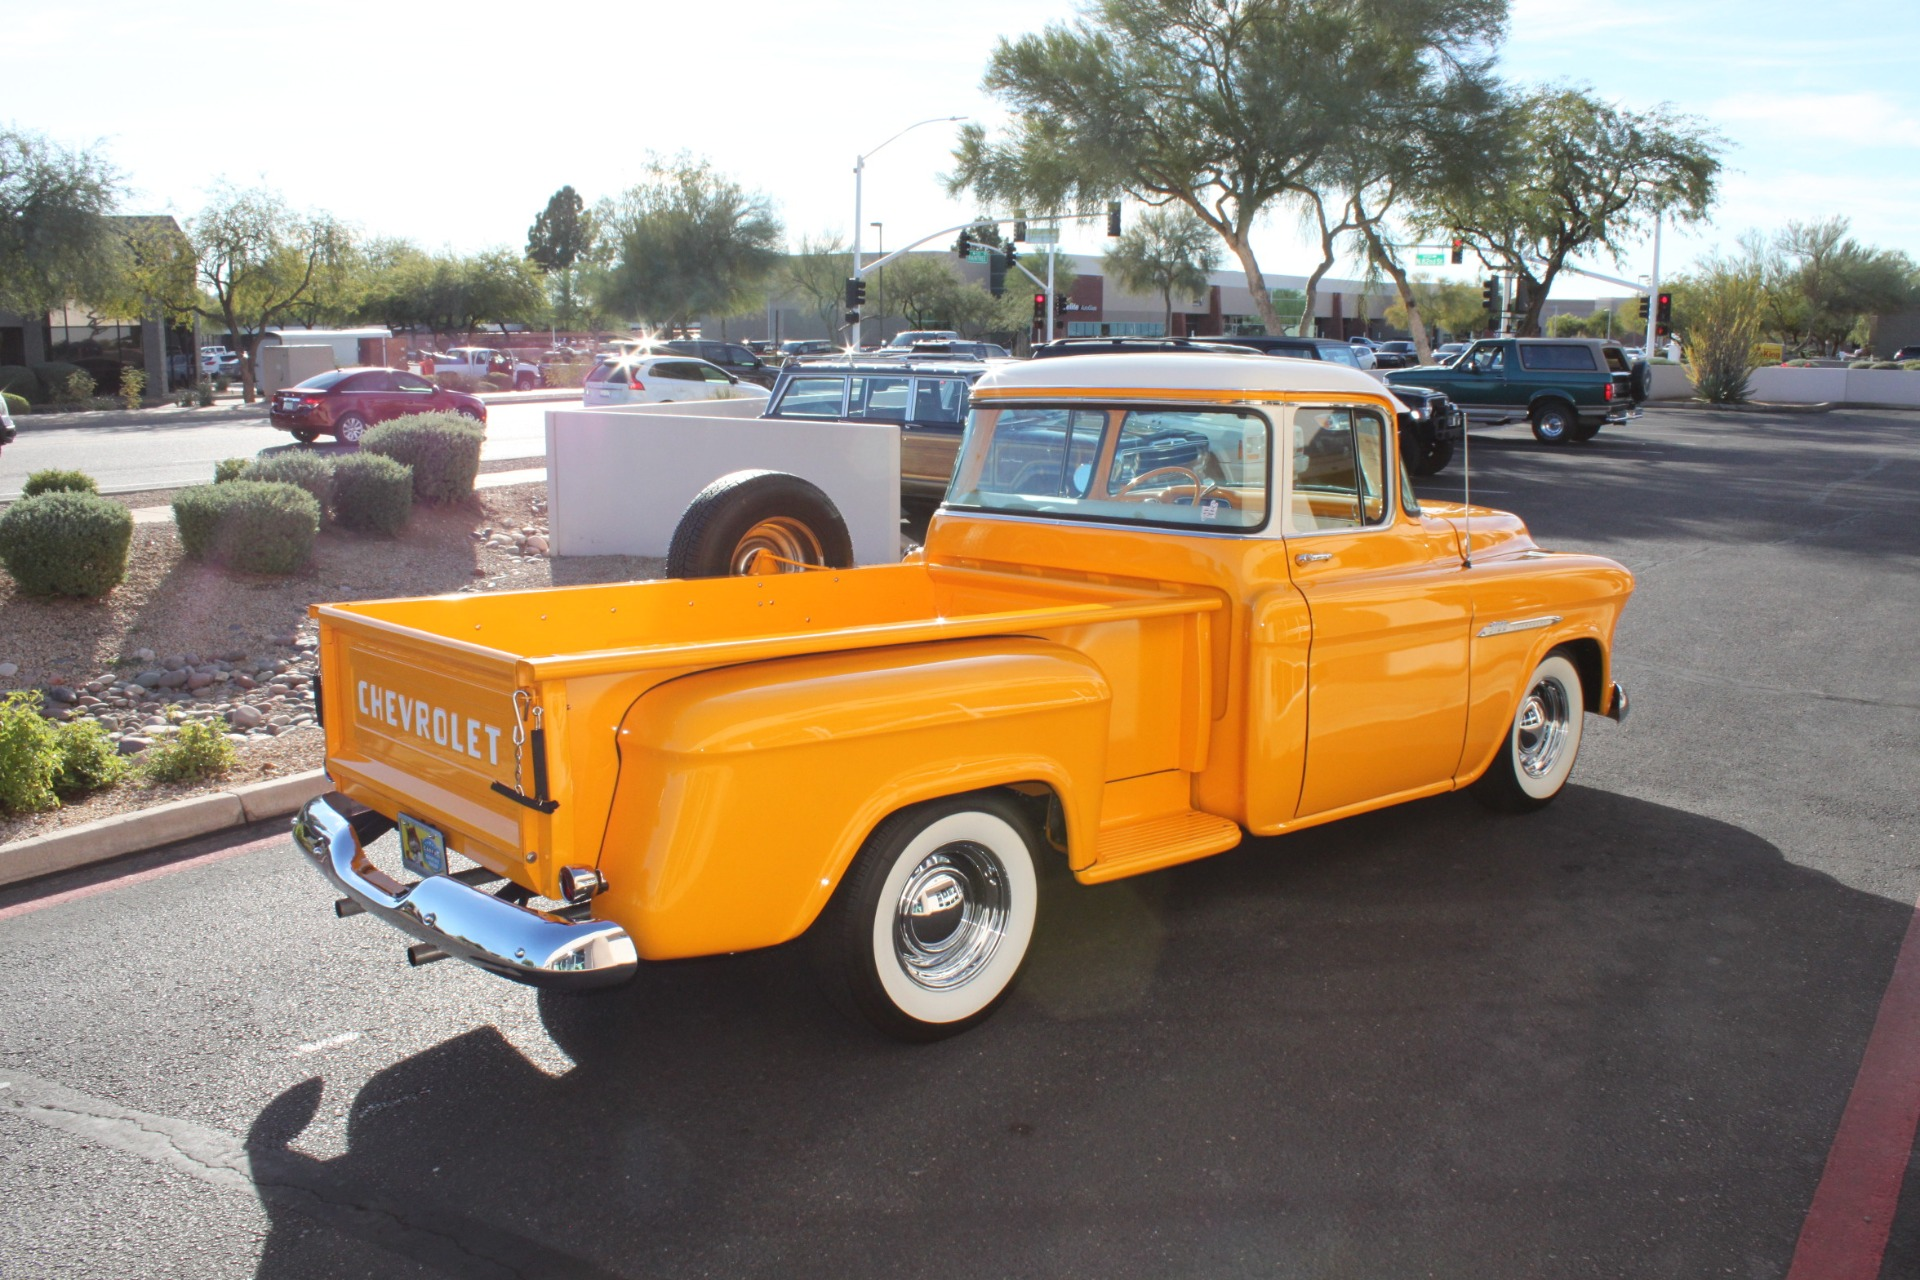 Used-1955-Chevrolet-3100-Pickup-Truck-Toyota